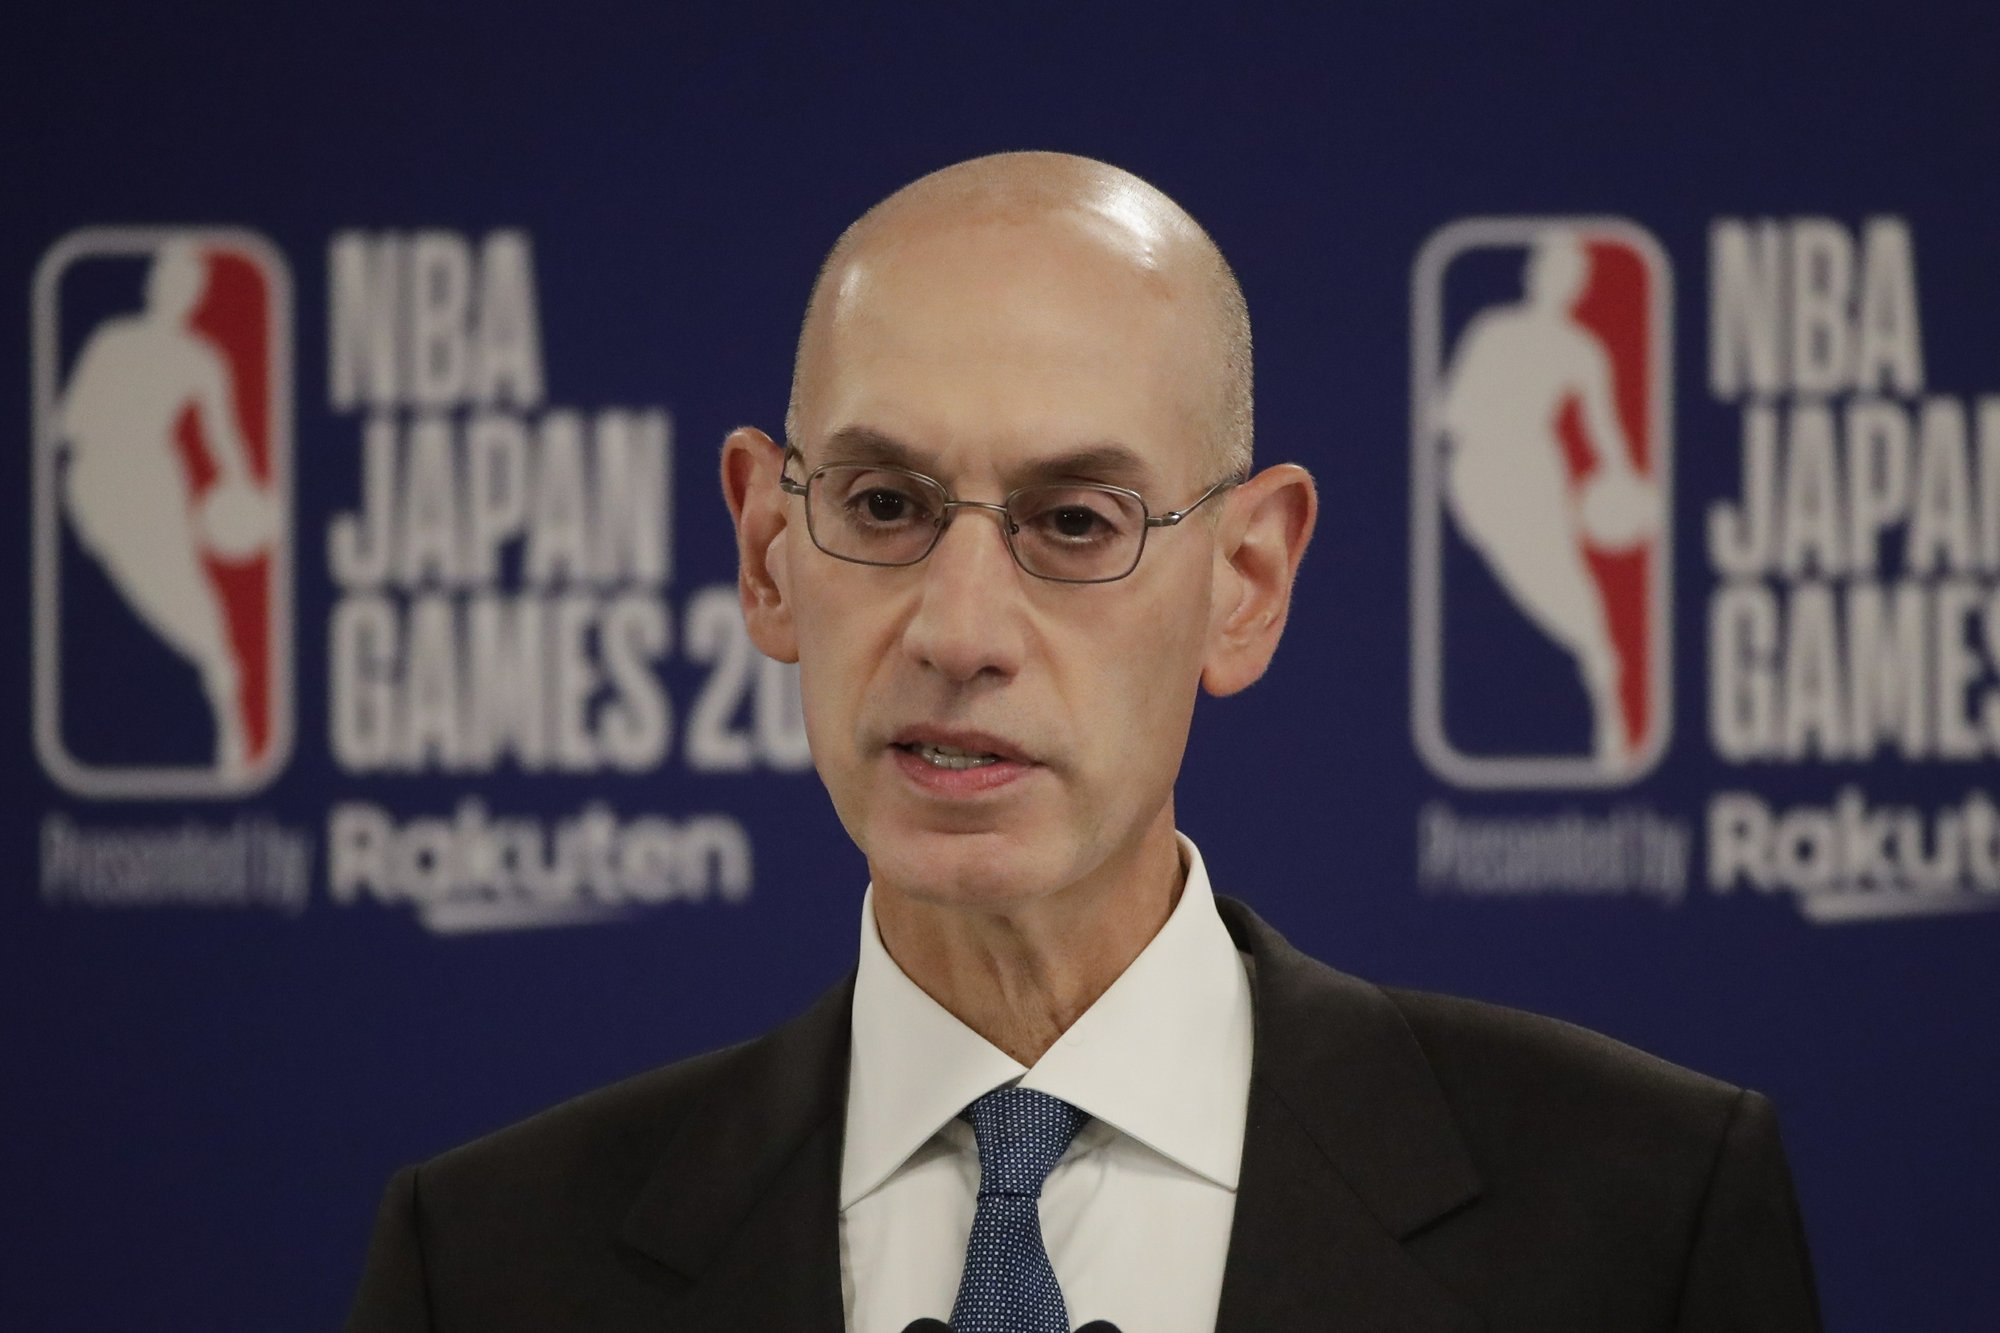 With China rift ongoing, NBA says free speech remains vital